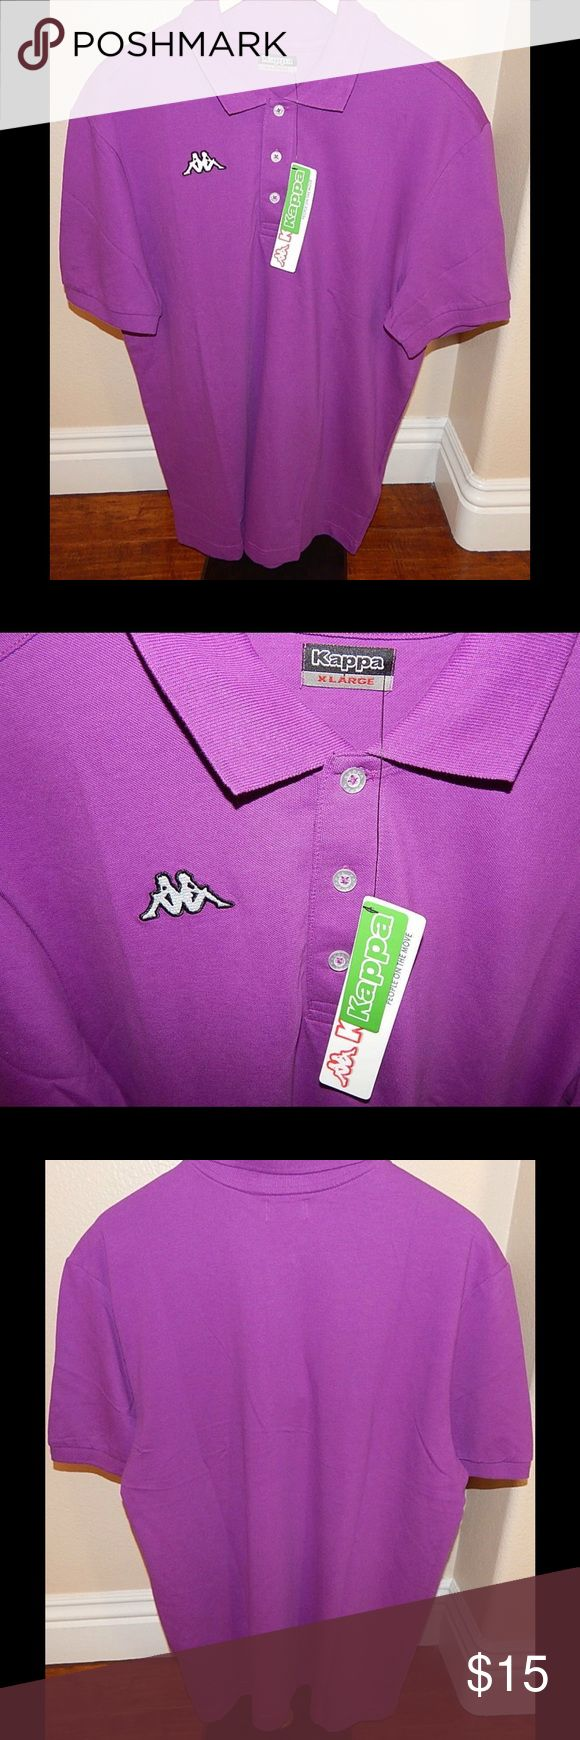 New Kappa Purple POLO SHIRT 2 OMINI KAPPA XL Kappa Purple POLO button up SHIRT 2 OMINI KAPPA New w Tags Sz XL Extra Large. Size Extra Large.  23 inches flat across chest. Kappa Shirts Polos